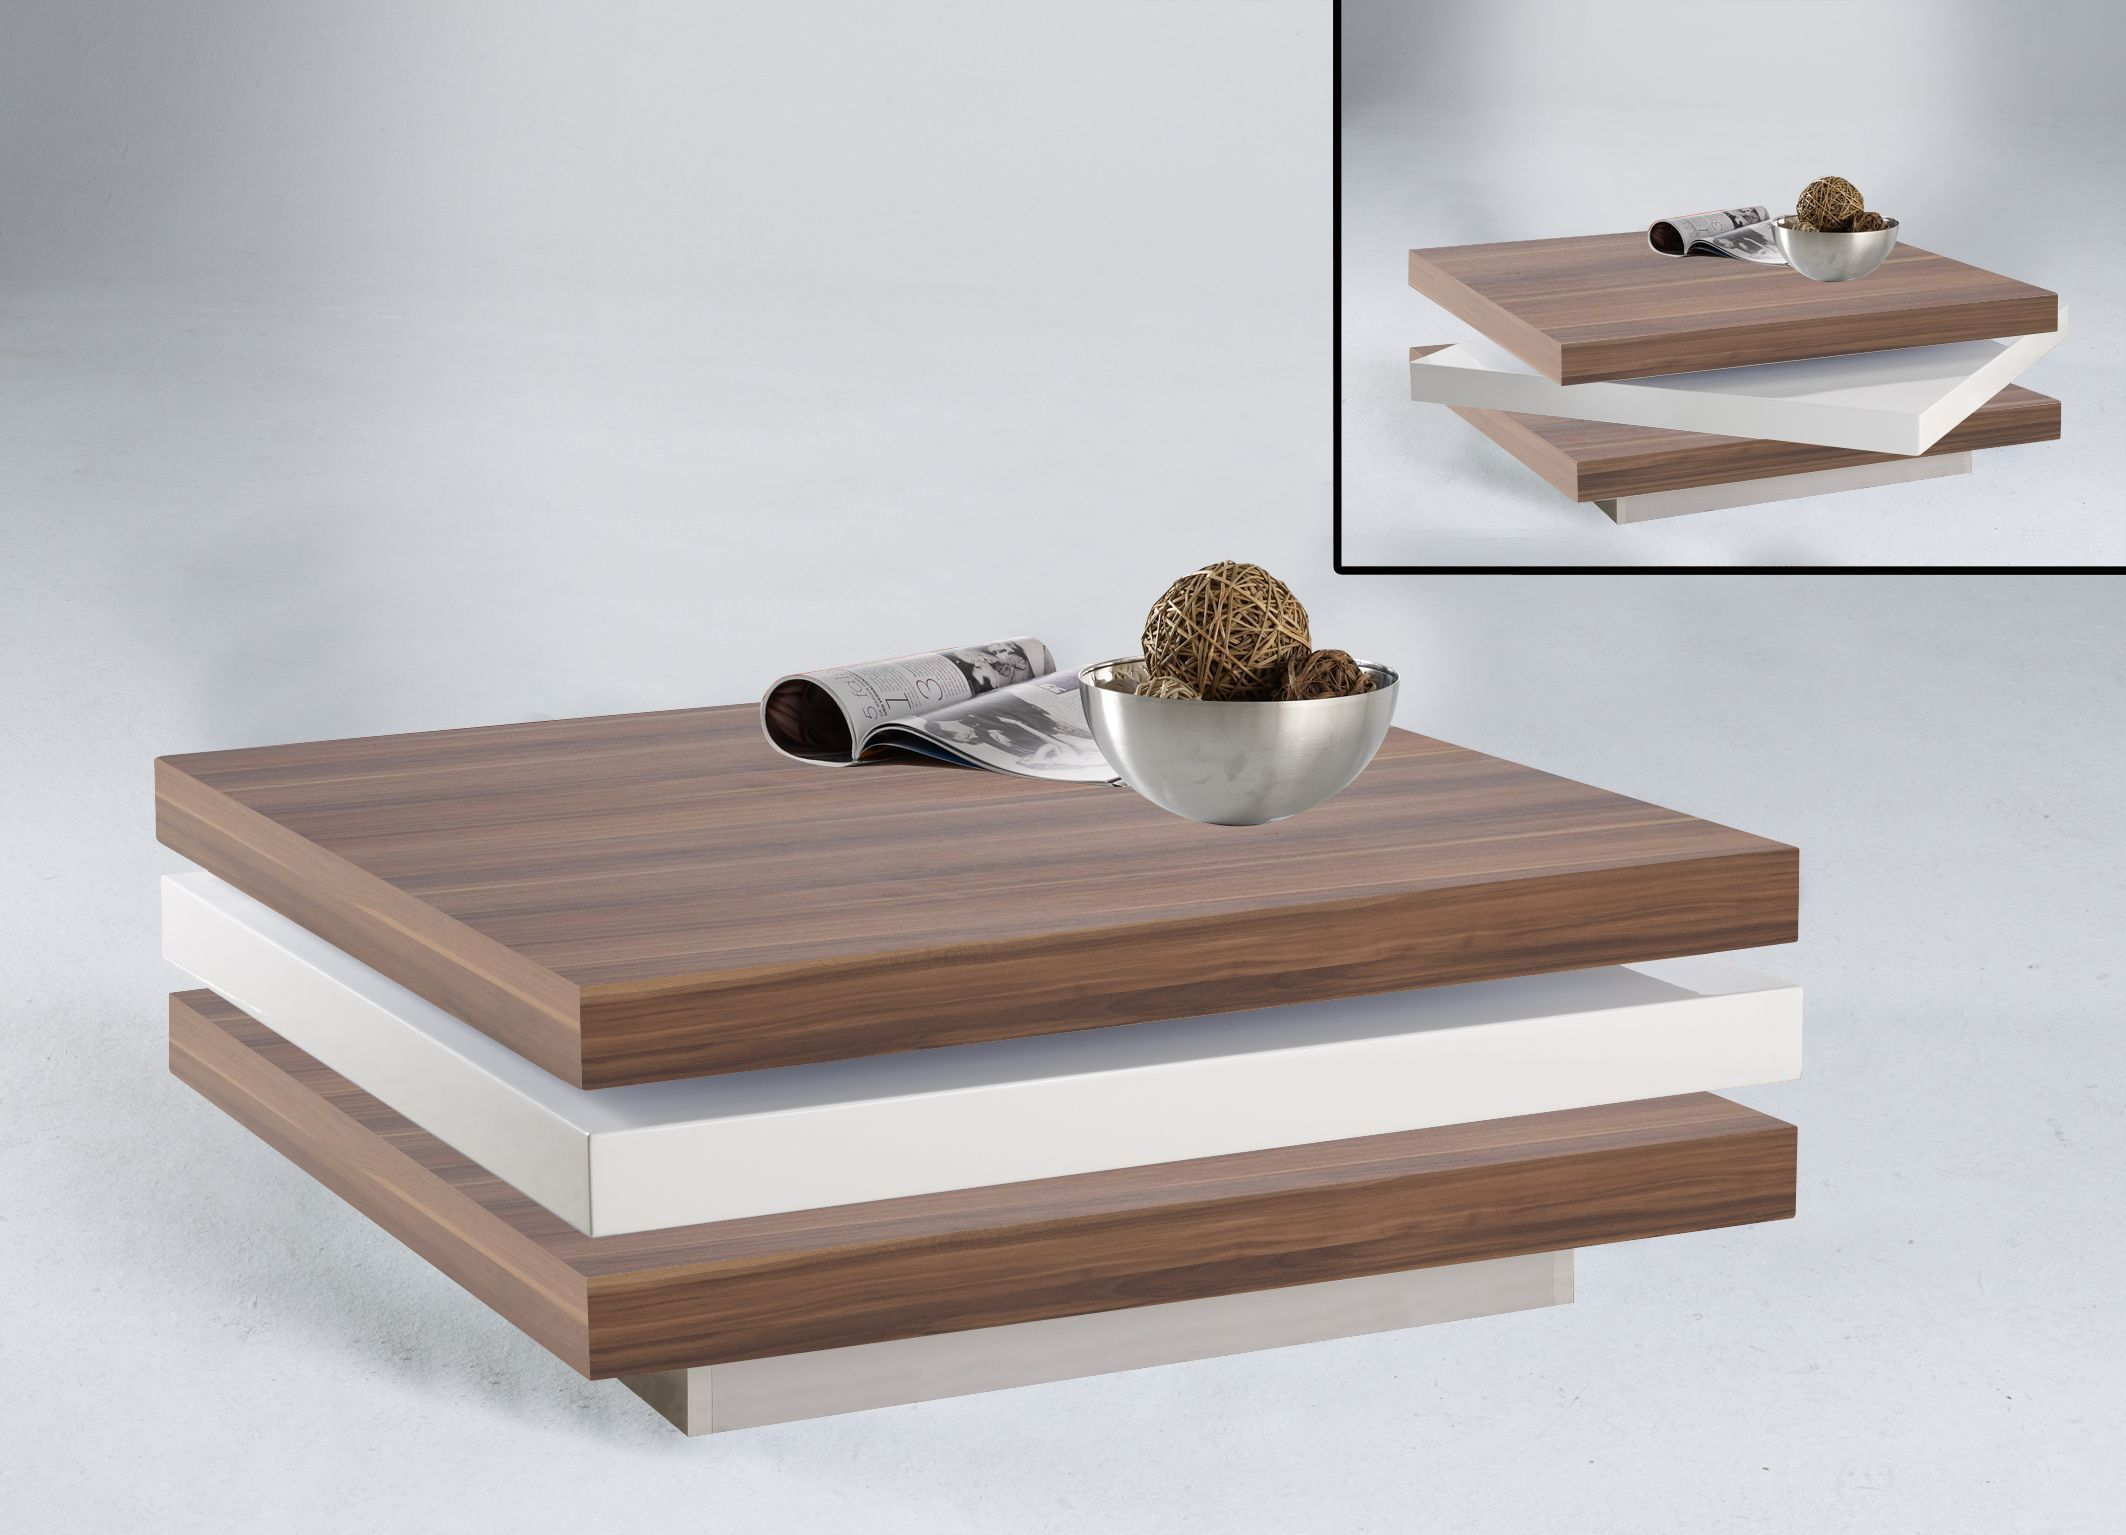 Modern Swivel Coffee Table.Helen Square Swivel Coffee Table In White And Walnut Wood Finish